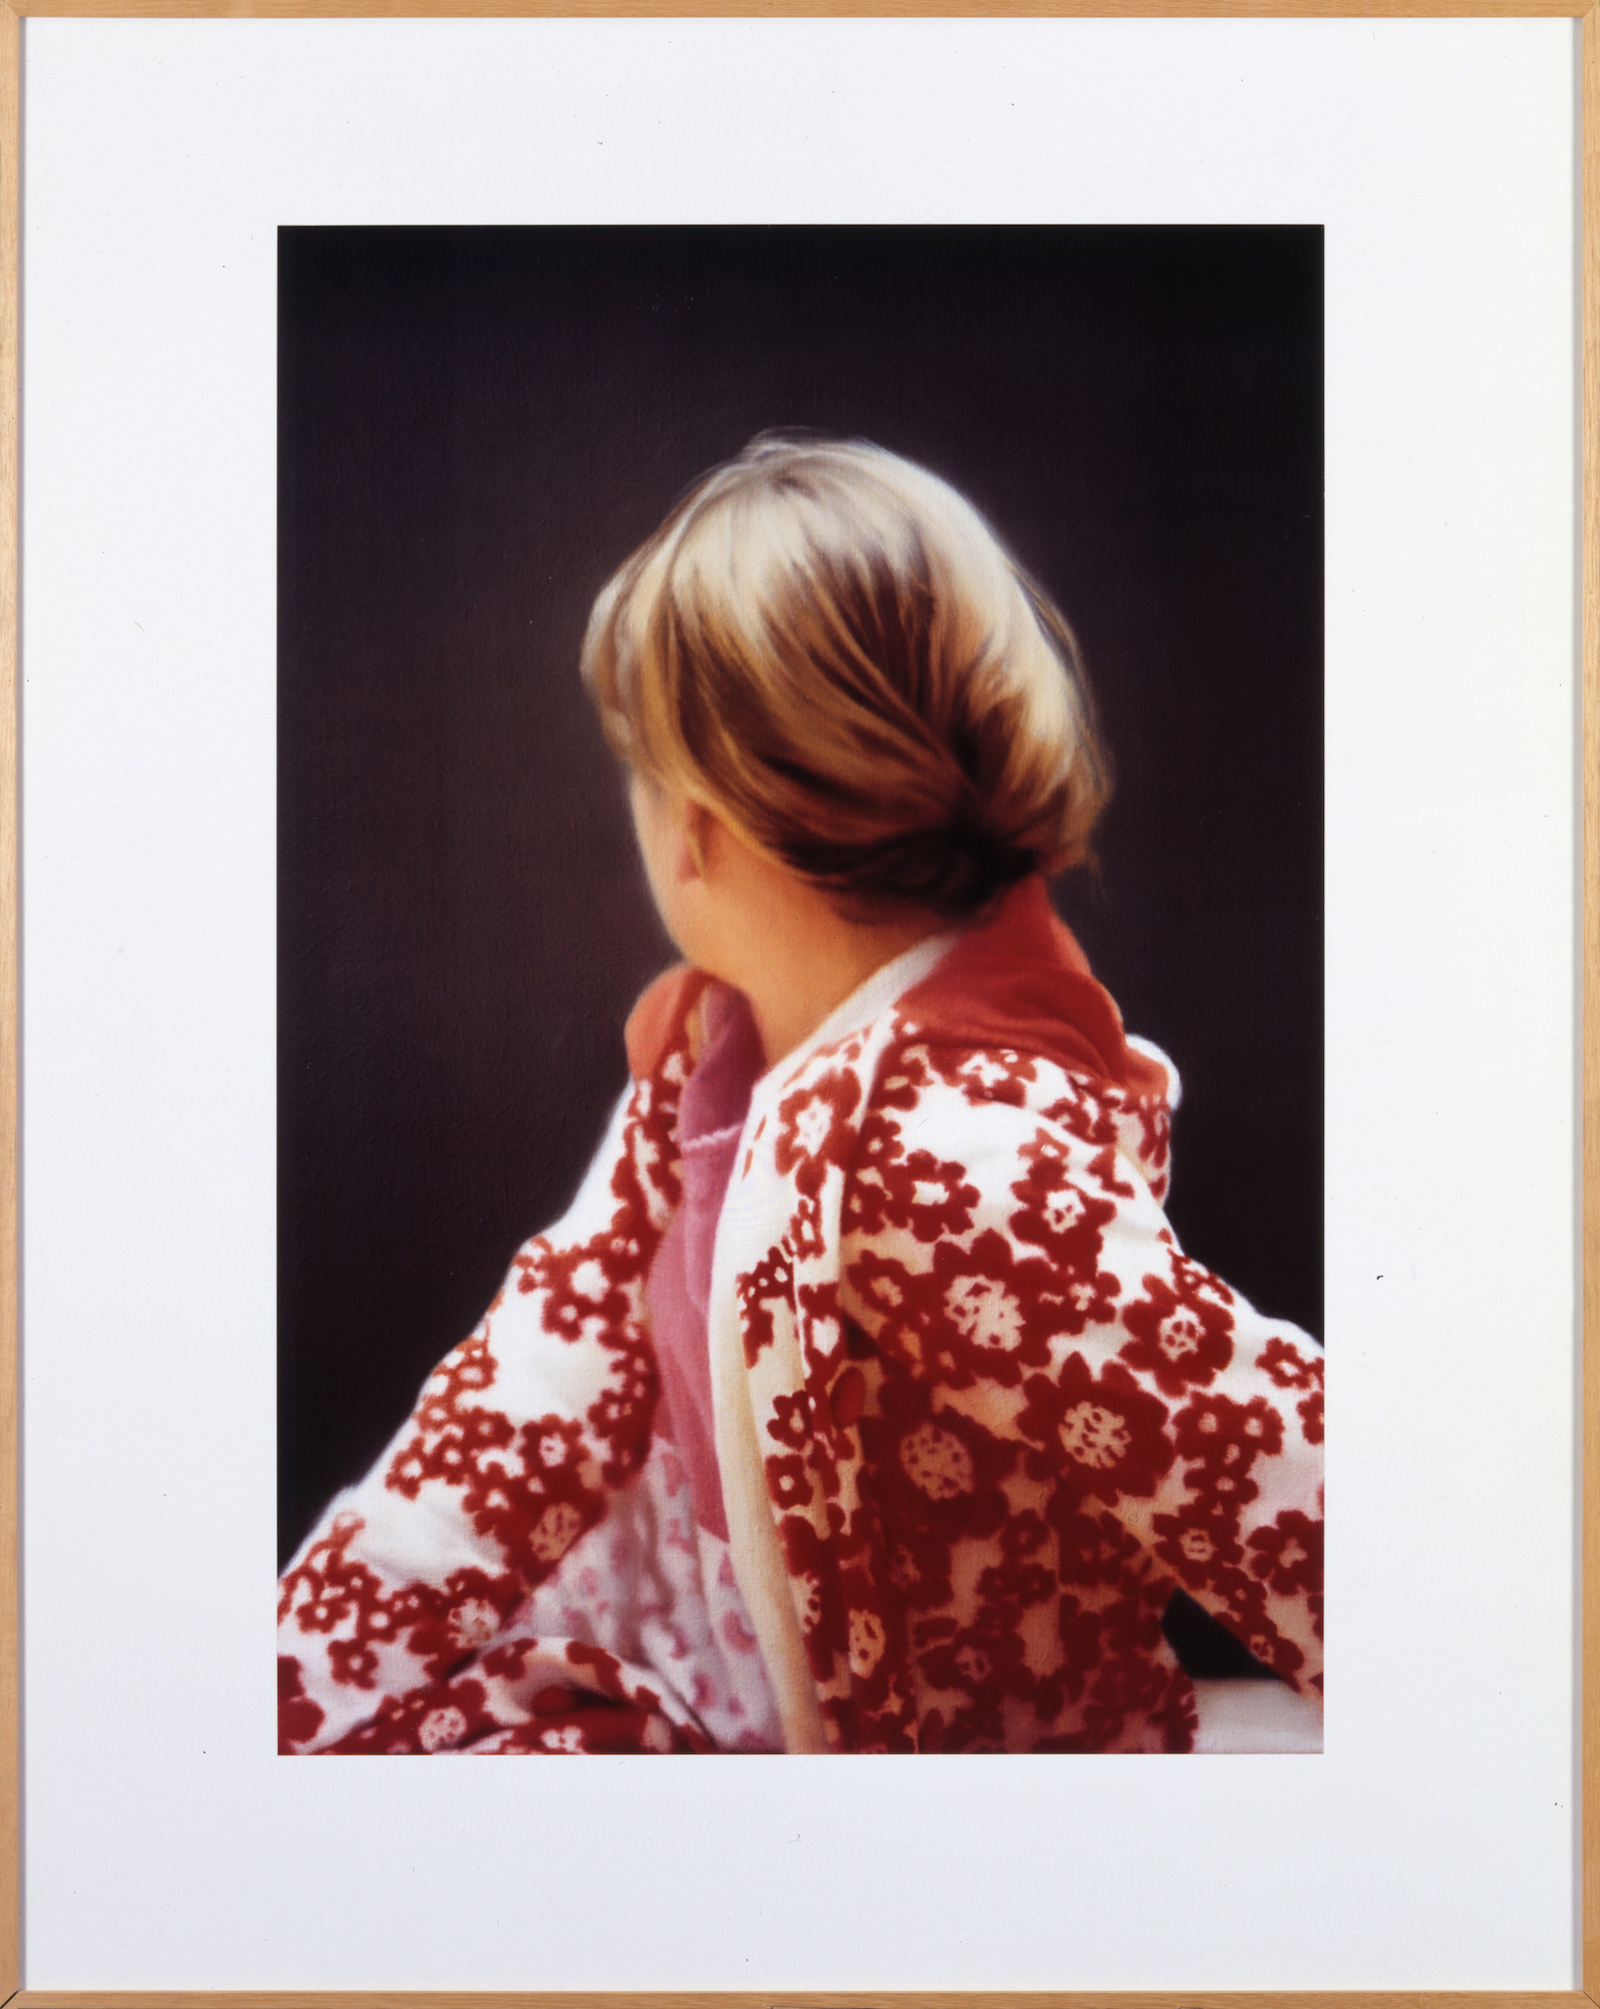 Gerhard Richter, Betty, 1991 © Gerhard Richter, 2019 (0124)